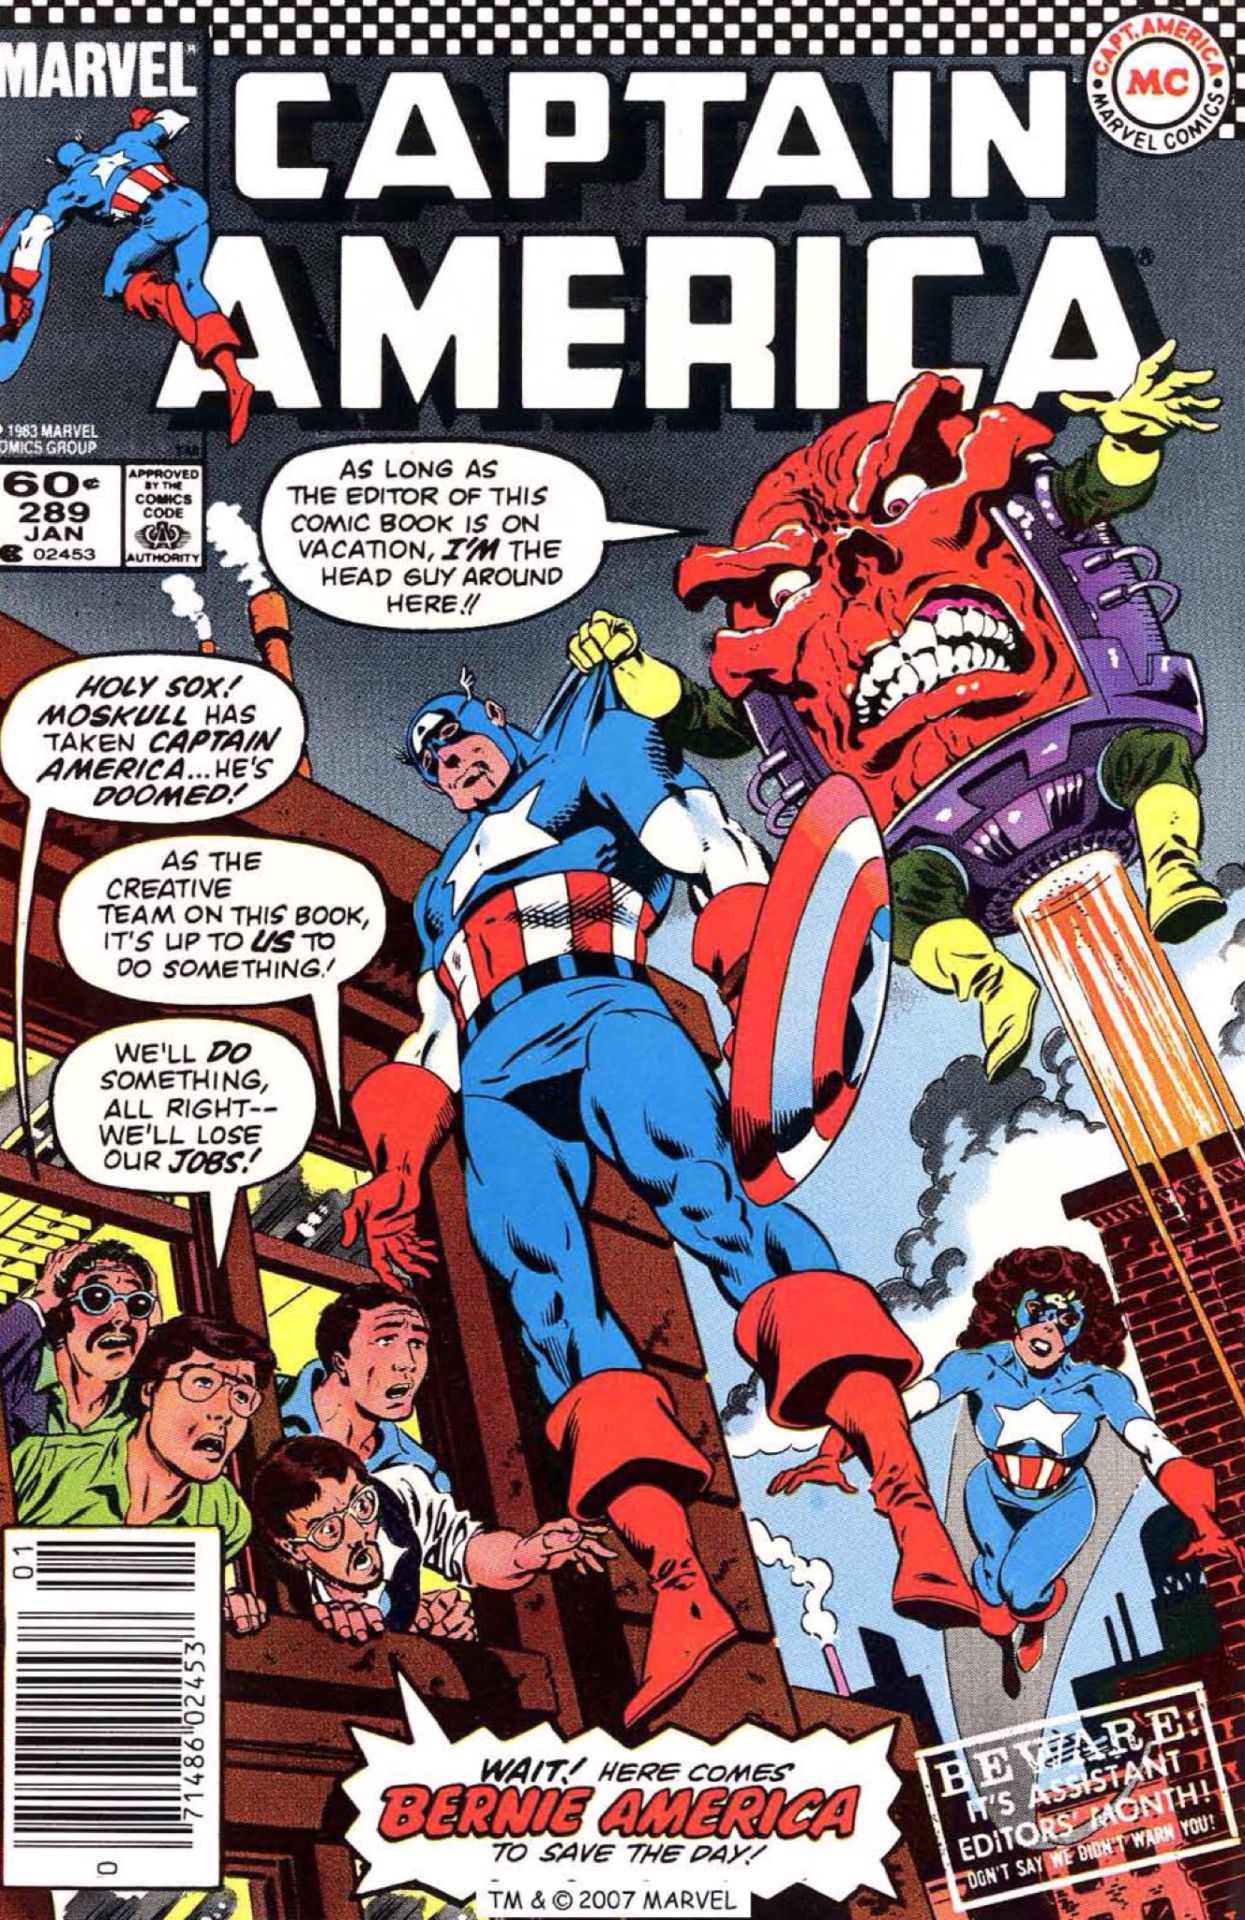 marvel1980s | Marvel comics vintage, Captain america comic books, Captain  america comic